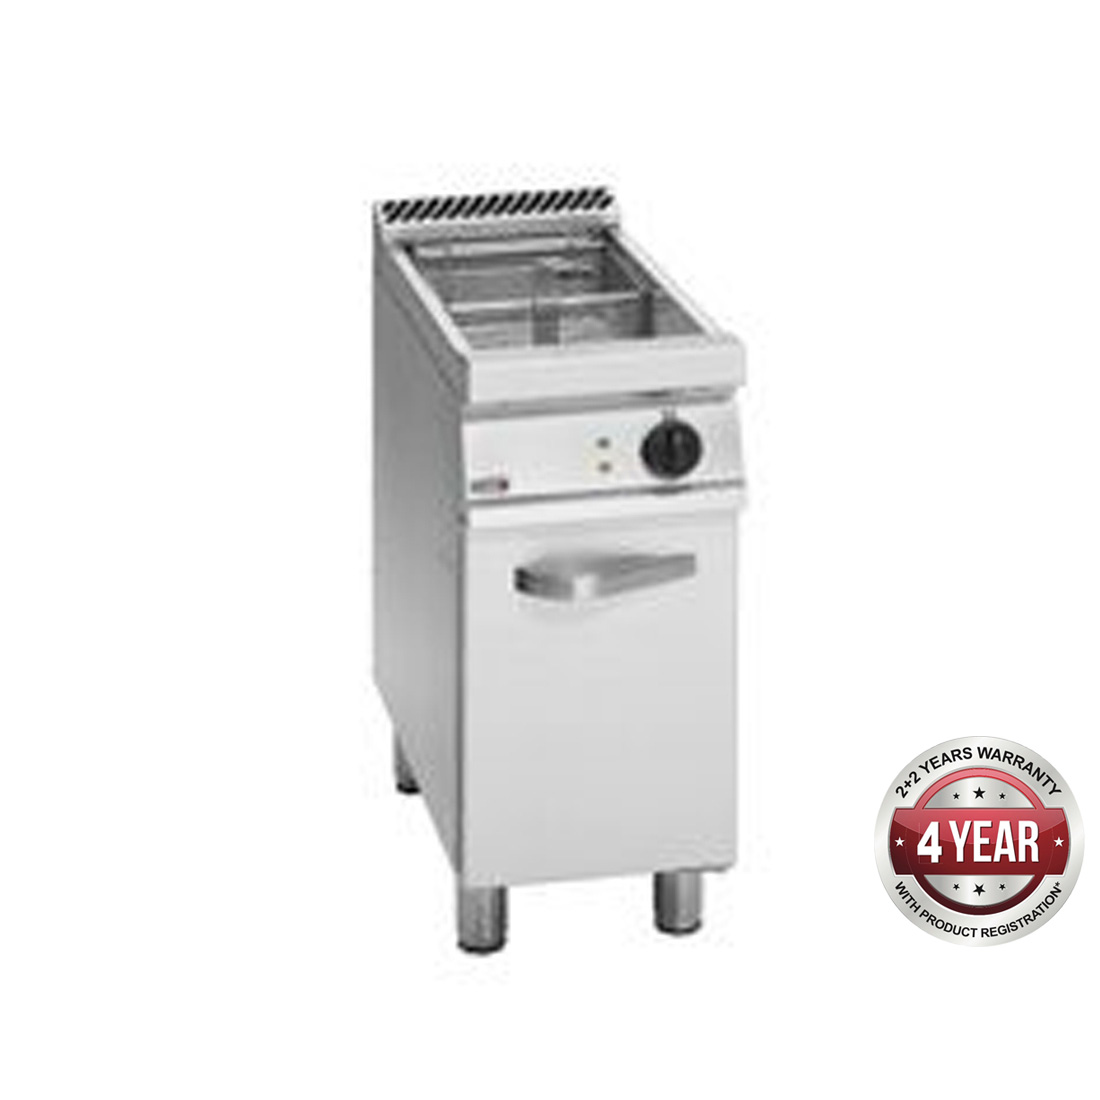 Fagor 700 series natural gas deep fat fryer FG7-05